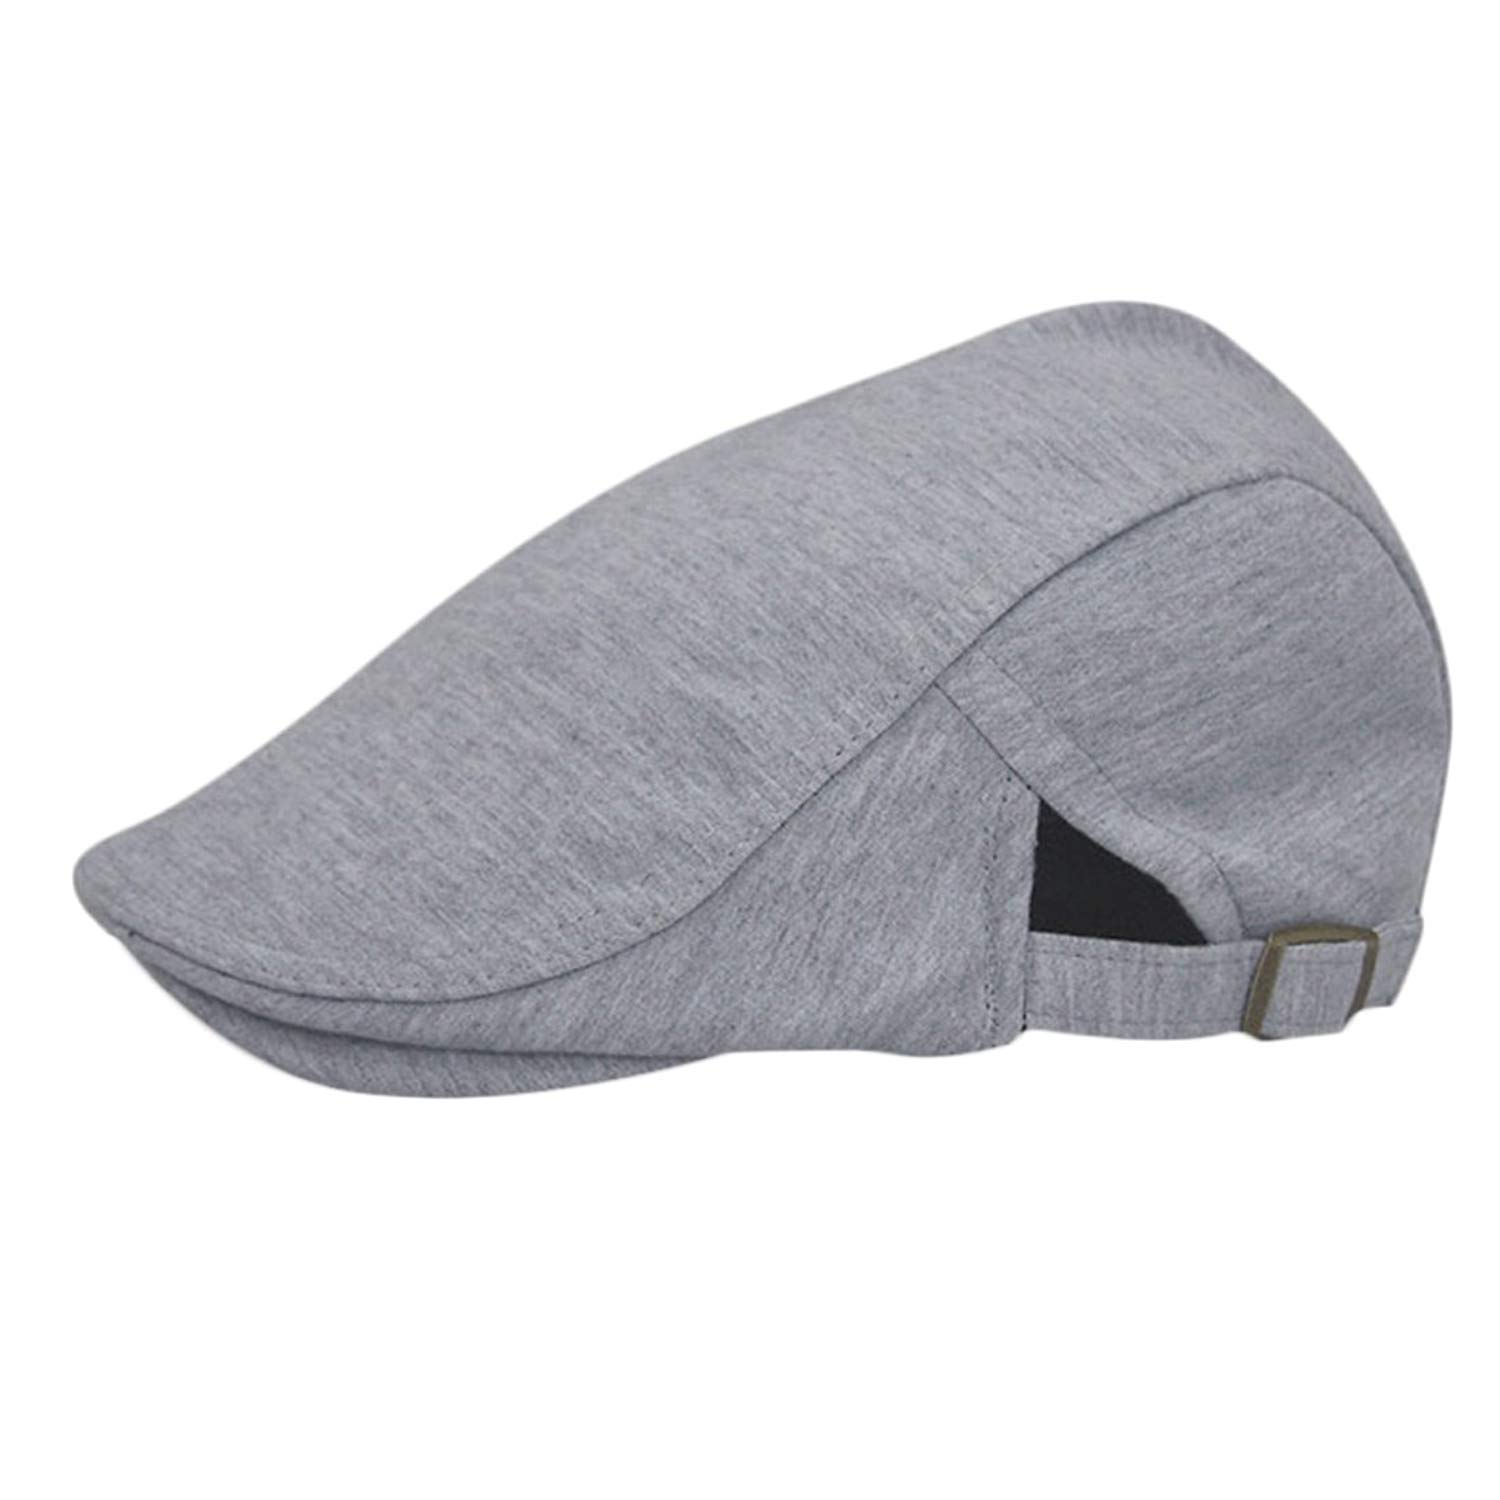 141fc61d7f84a Get Quotations · Voberry Mens Retro Beret Cap newsboy IVY Cabbie Driving  Flat Hat Cap